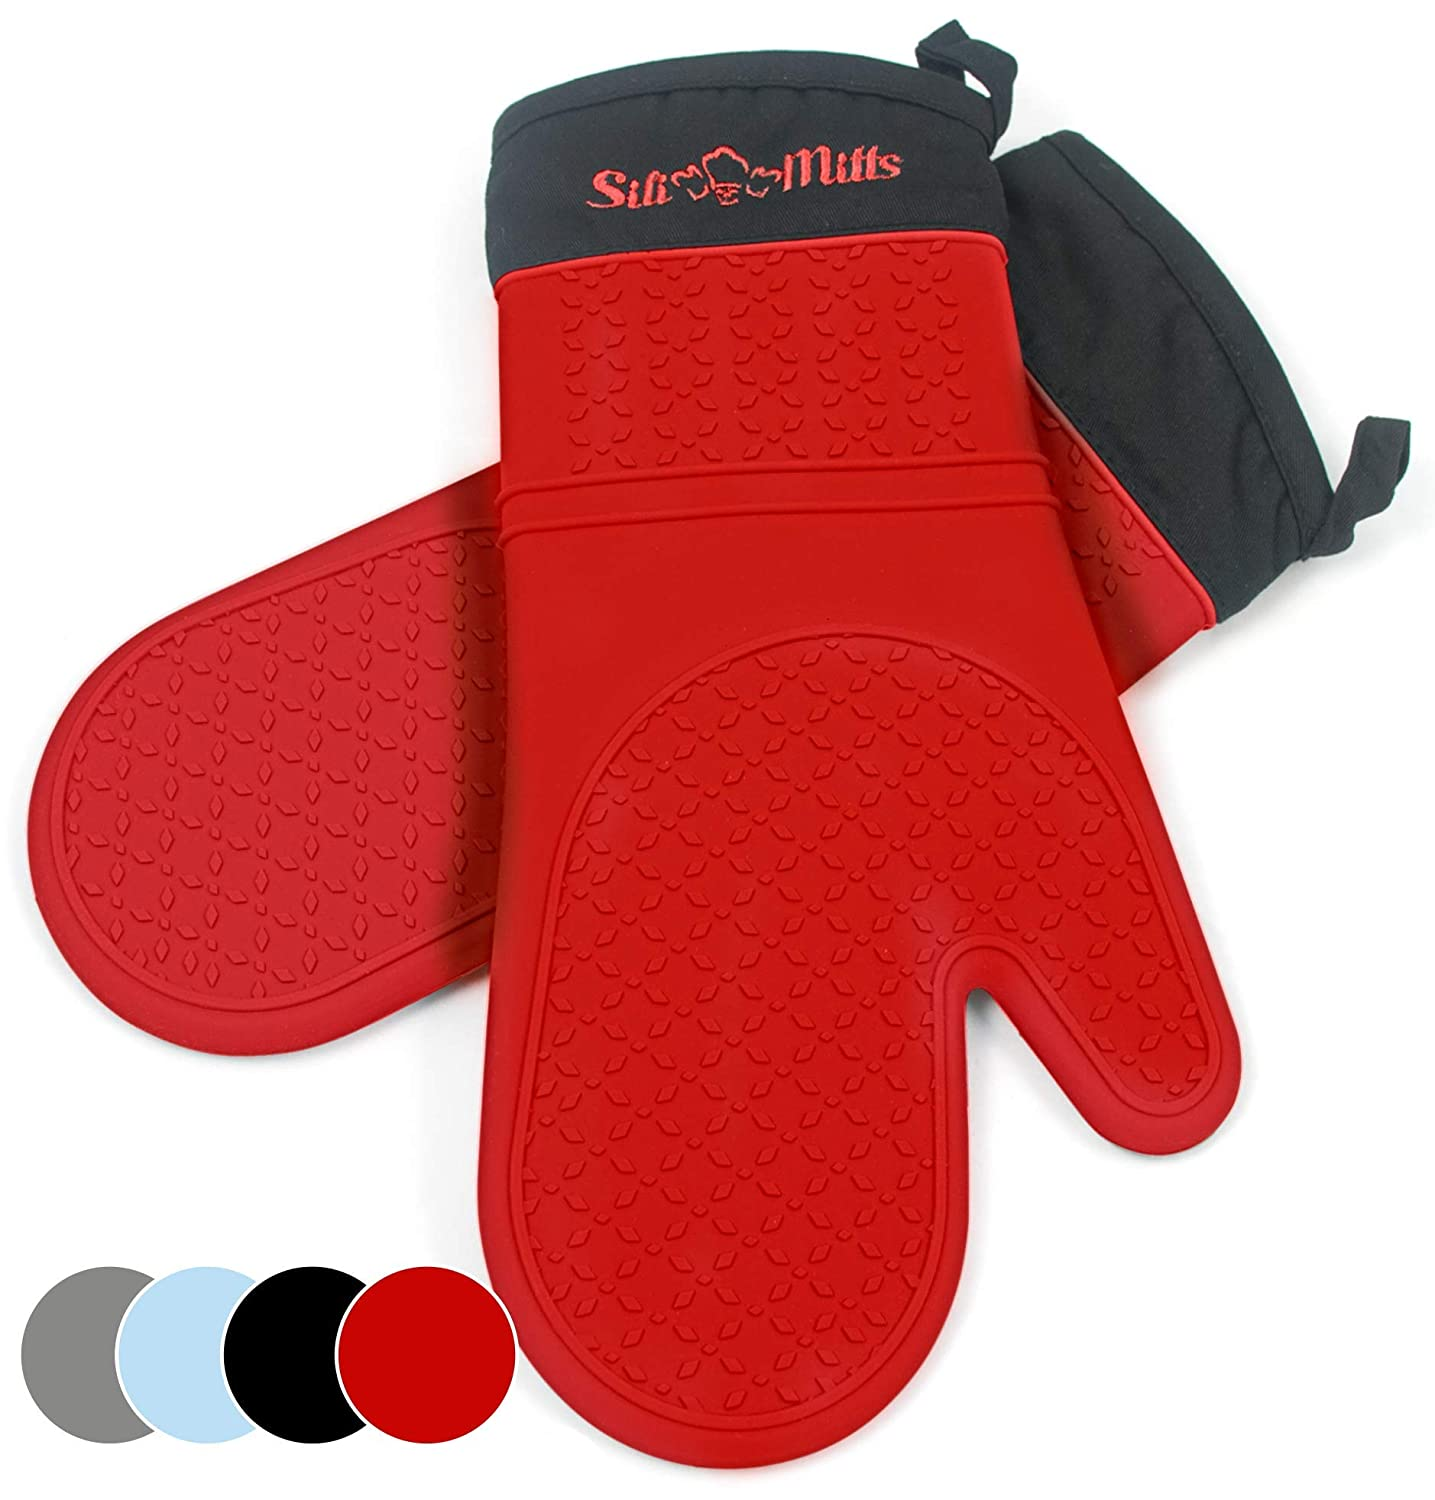 Frux Home and Yard Red Silicone Pot Holder Oven Mitts - 1 Pair of Extra Long Professional Heat Resistant Pot Holder & Baking Gloves - Food Safe, BPA Free FDA Approved with Soft Inner Lining